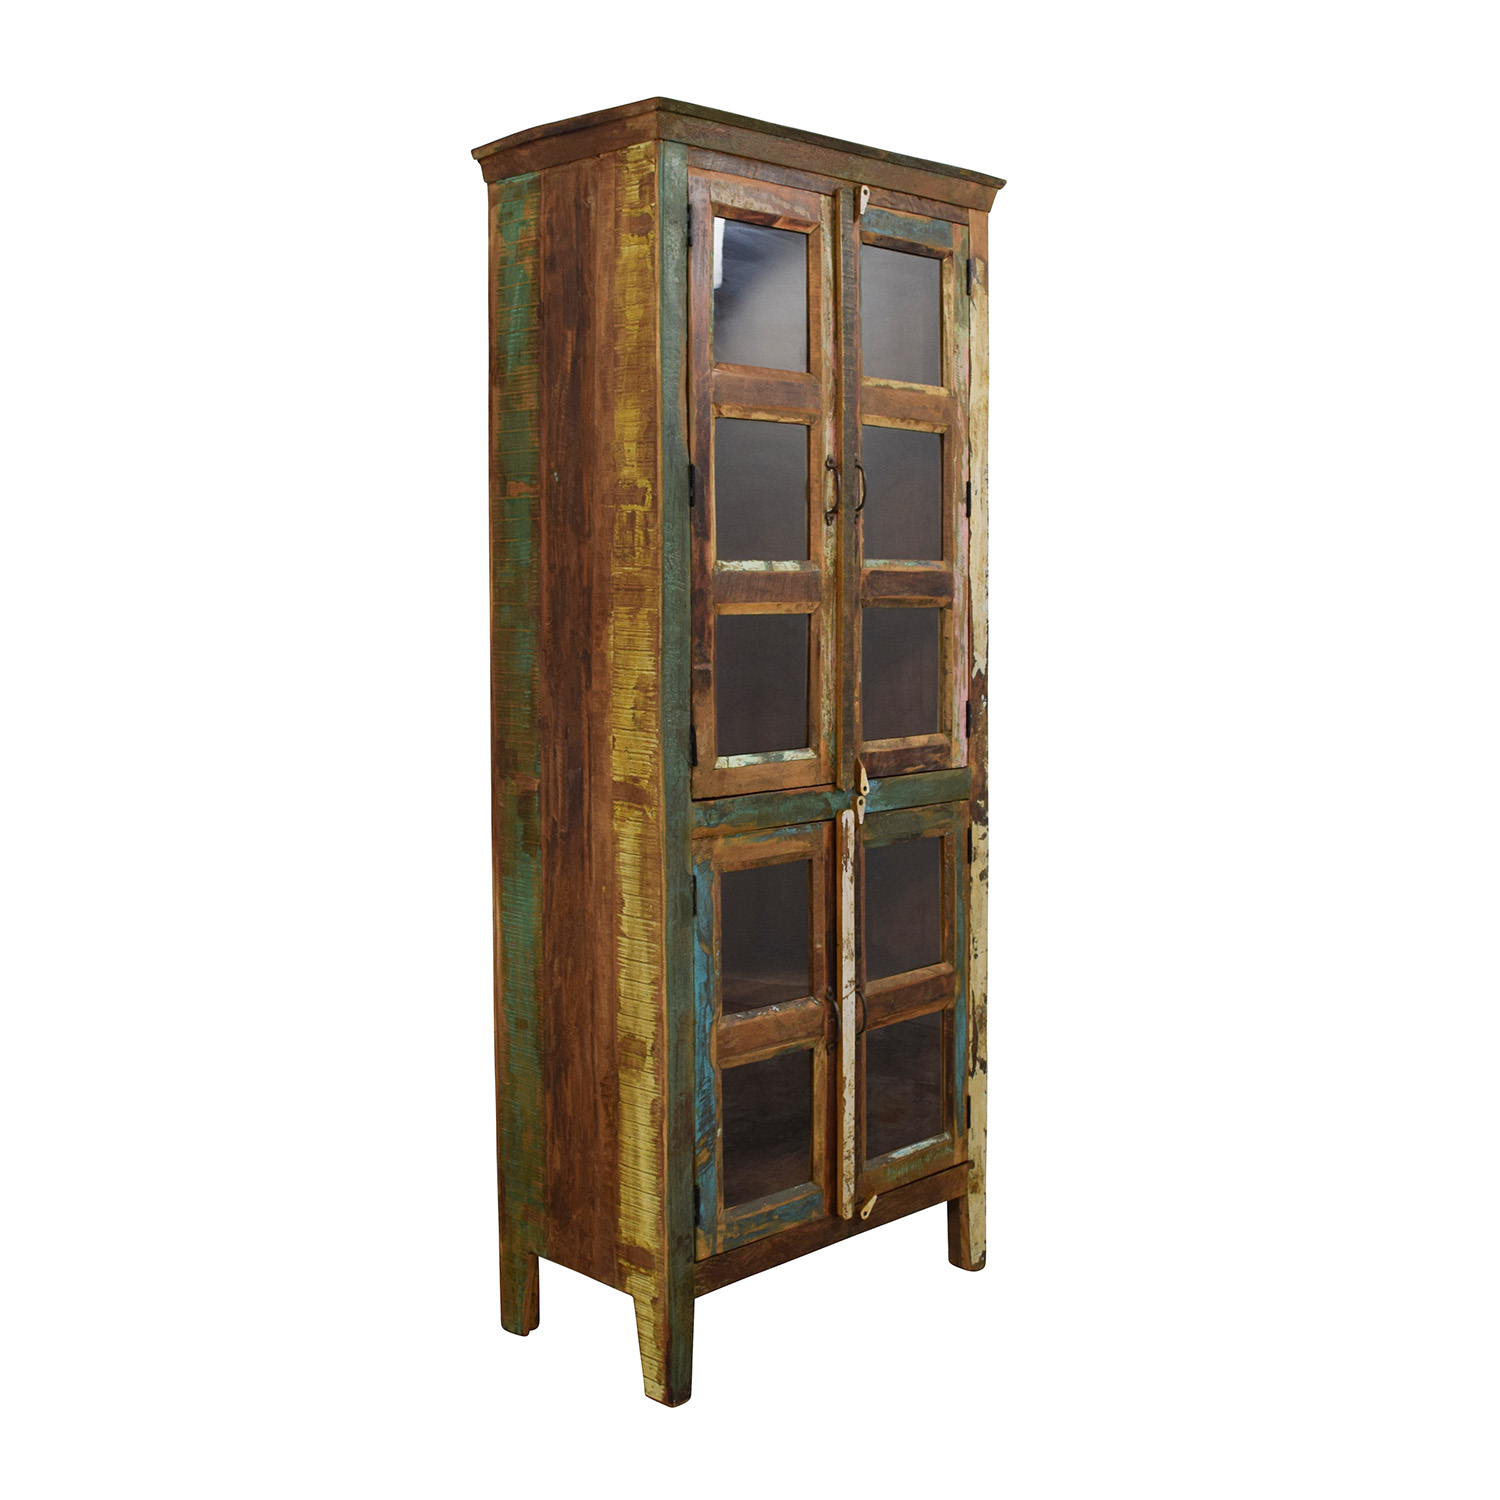 Vintage Rustic Armoire second hand